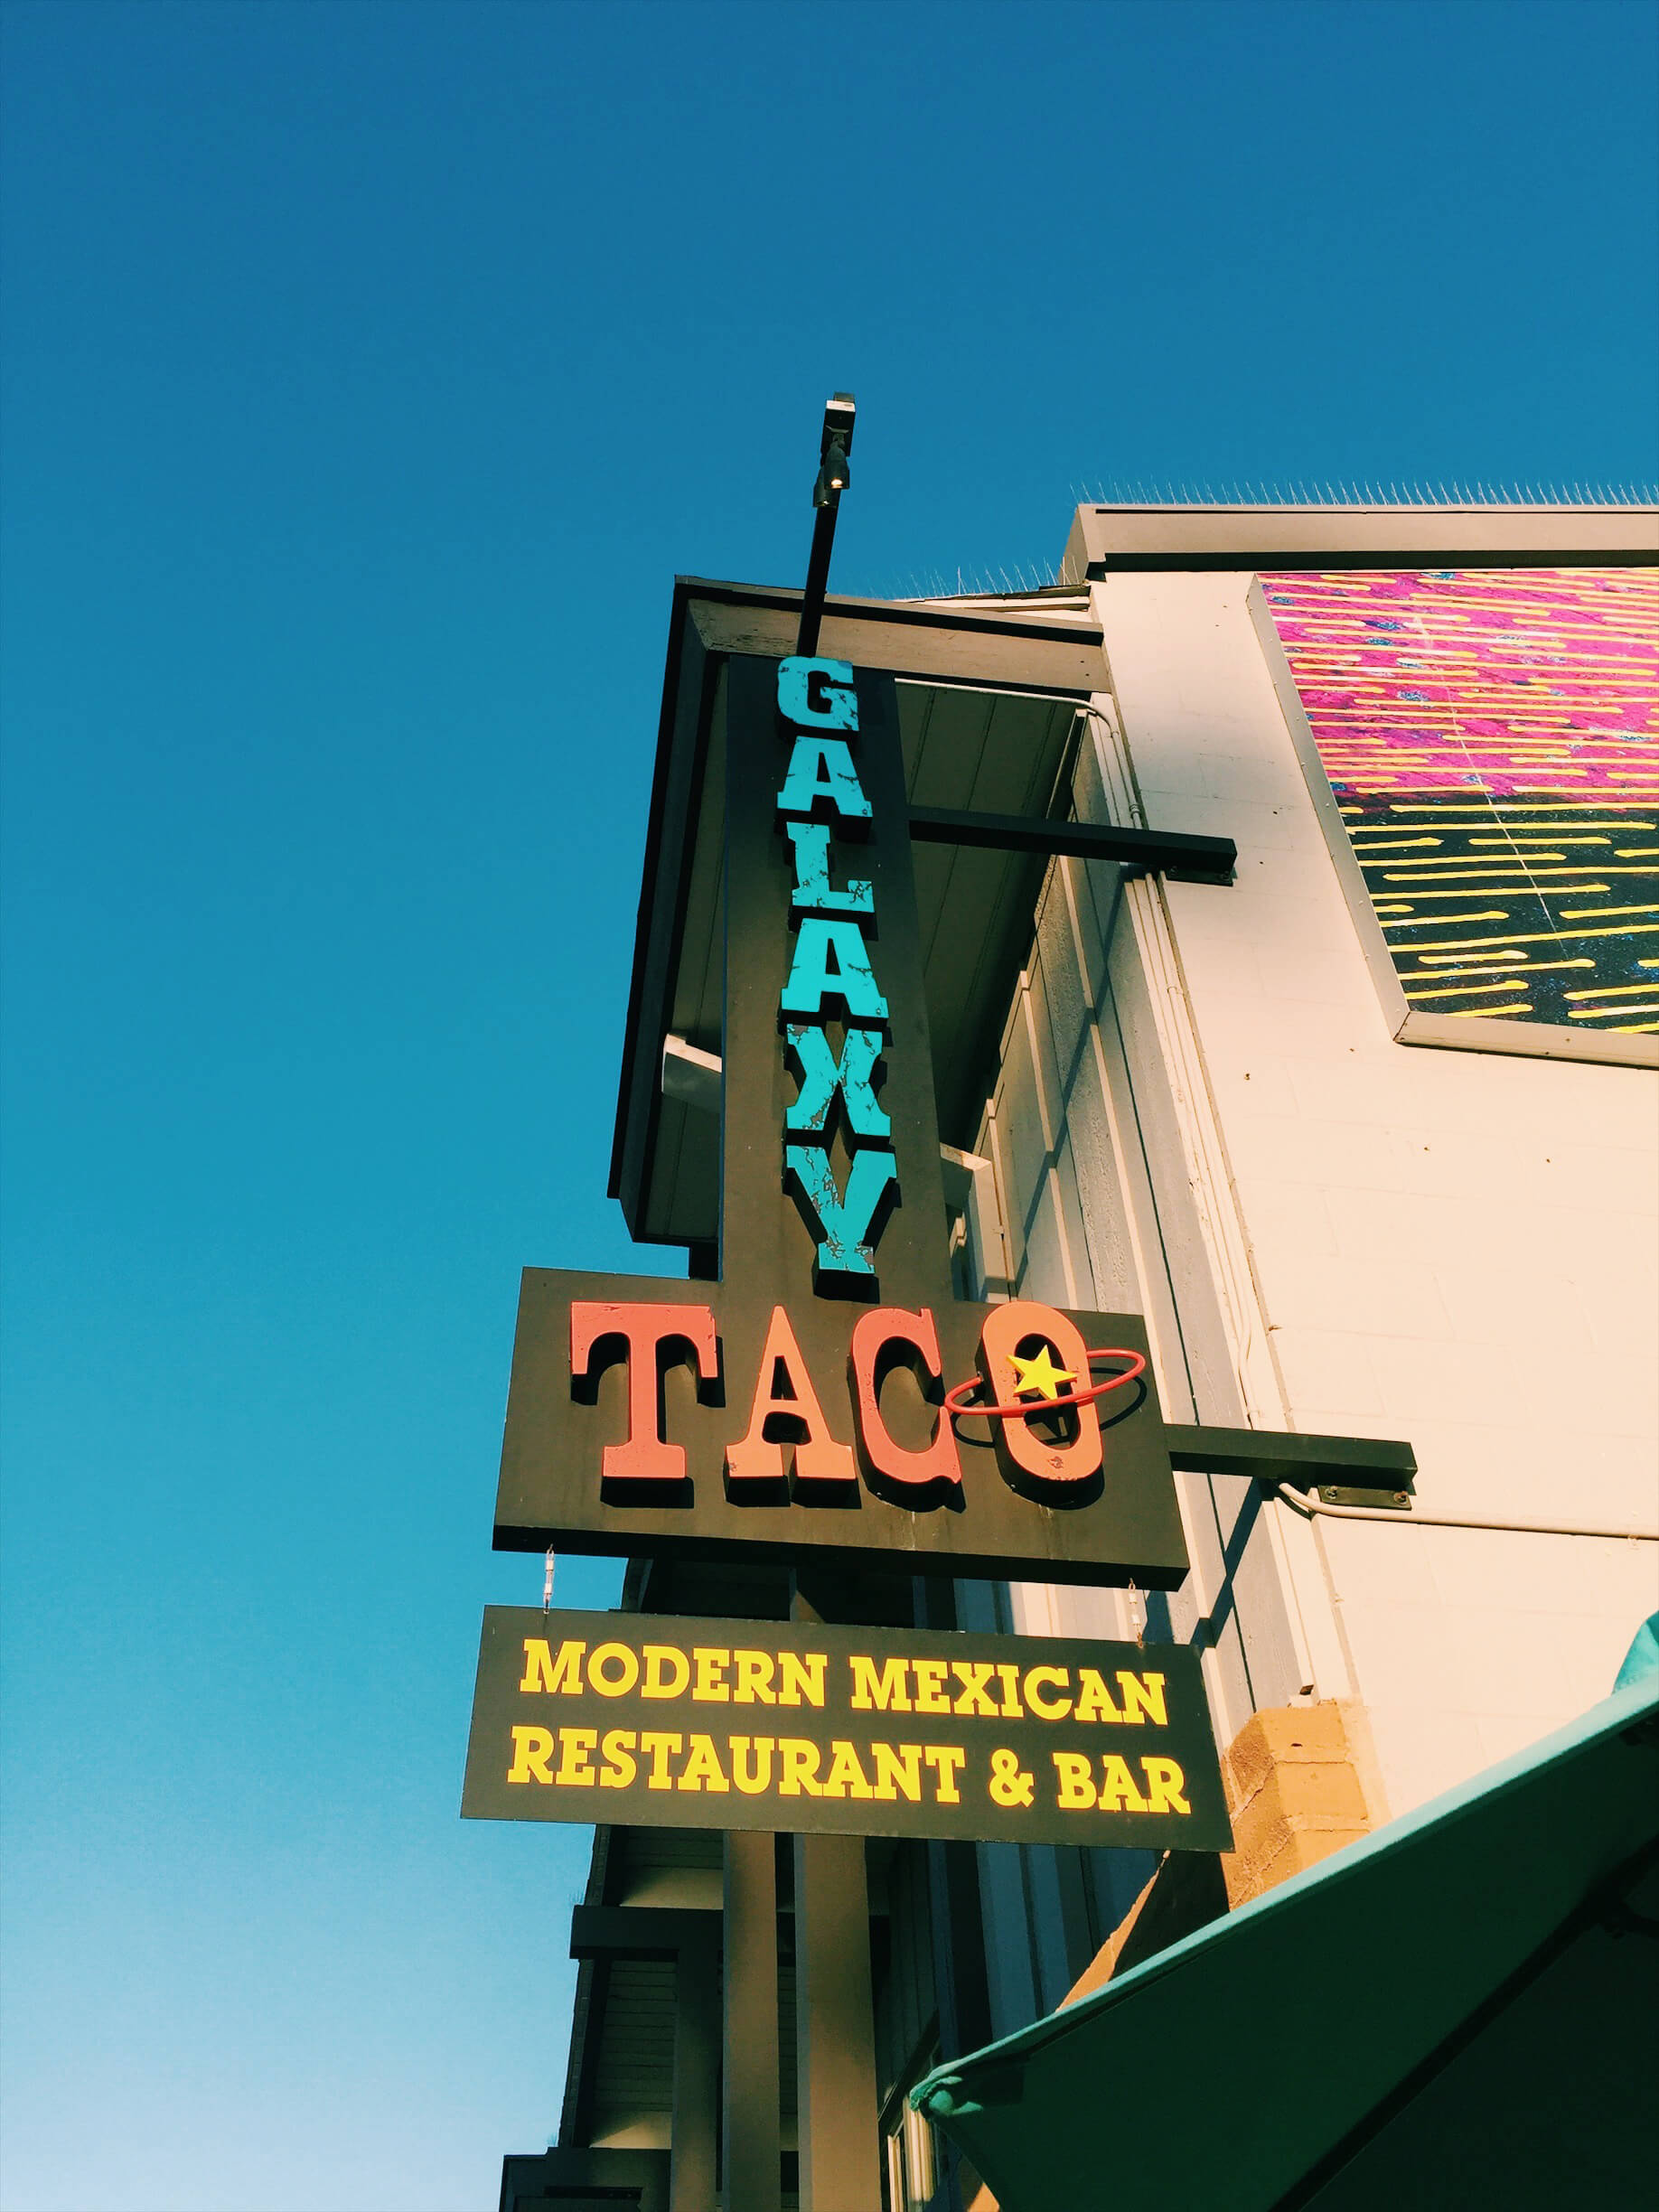 best food in san diego, where to eat in san diego, san diego eats, eating in san diego, best eats in san diego, where to eat san diego, food to eat in san diego, things to eat in san diego, healthy eating san diego, best eats san diego, san diego where to eat, best things to eat in san diego, restaurants to eat in san diego, cheap eats san diego, where to eat in downtown san diego, where to eat in san diego downtown, san diego best eats, where to eat in san diego ca, best food to eat in san diego, eat mexican food san diego